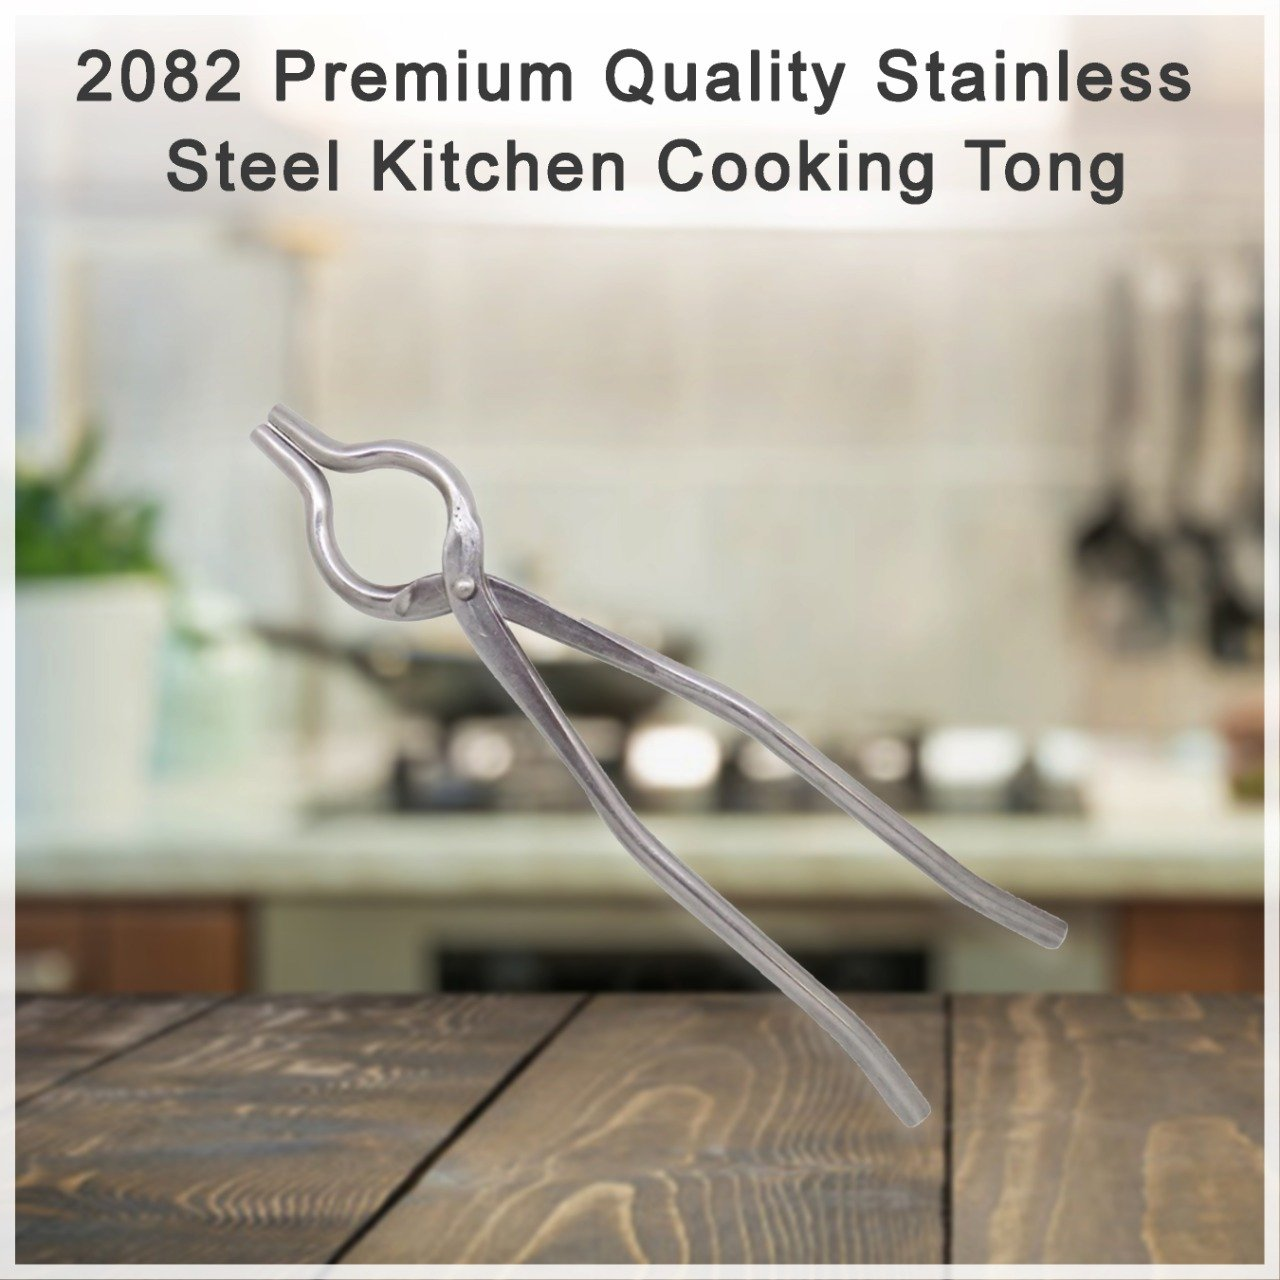 Premium Quality Stainless Steel Kitchen Cooking Tong